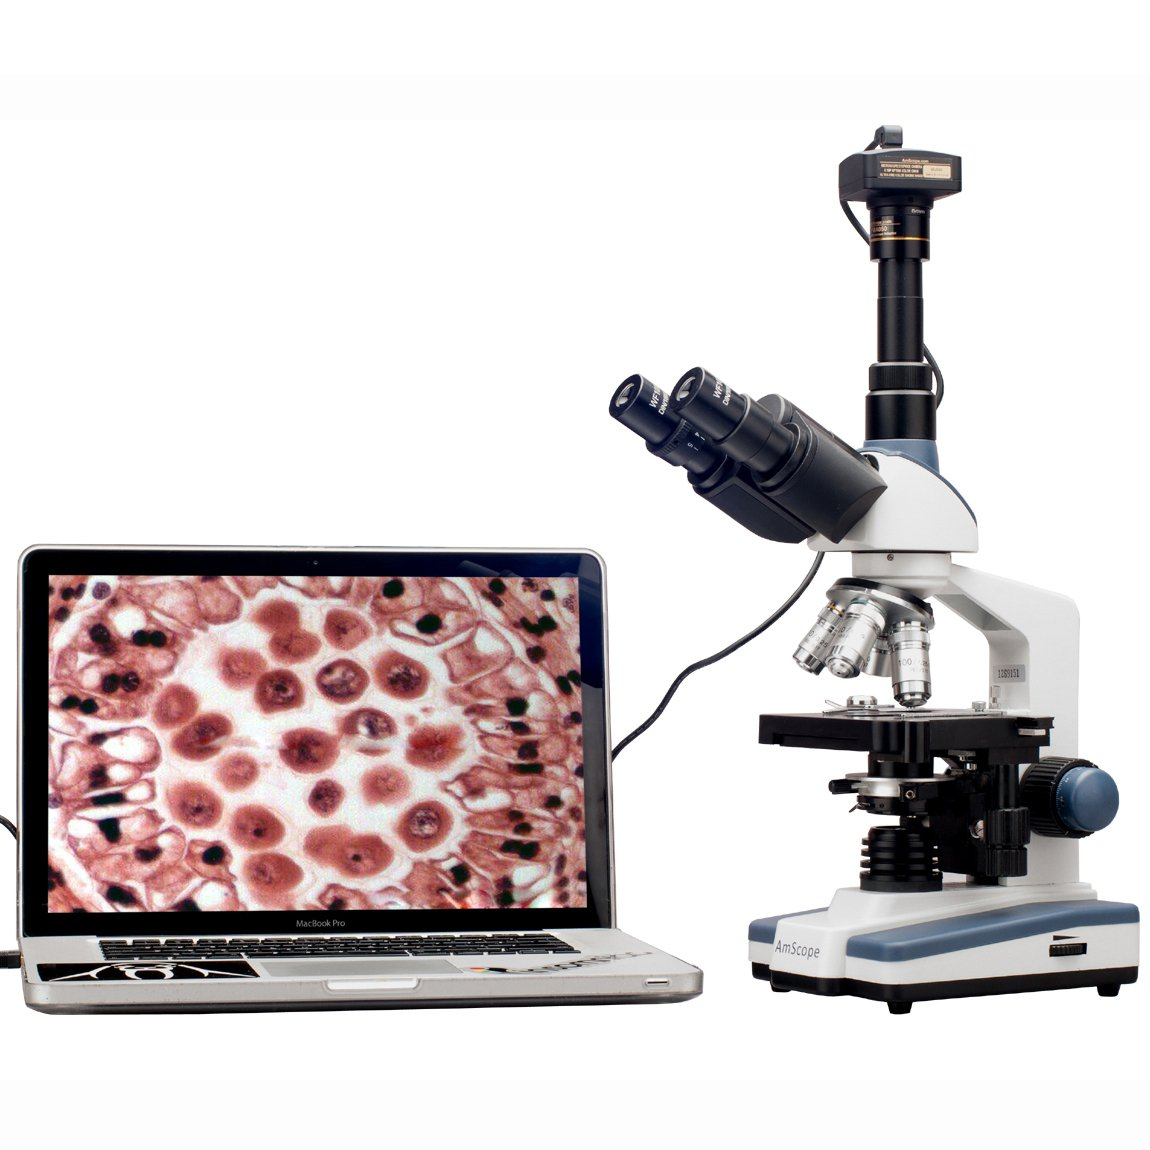 AmScope T120B-5M Digital Professional Siedentopf Trinocular Compound Microscope, 40X-2000X Magnification, WF10x and WF20x Eyepieces, Brightfield, LED Illumination, Abbe Condenser with Iris Diaphragm, Double-Layer Mechanical S